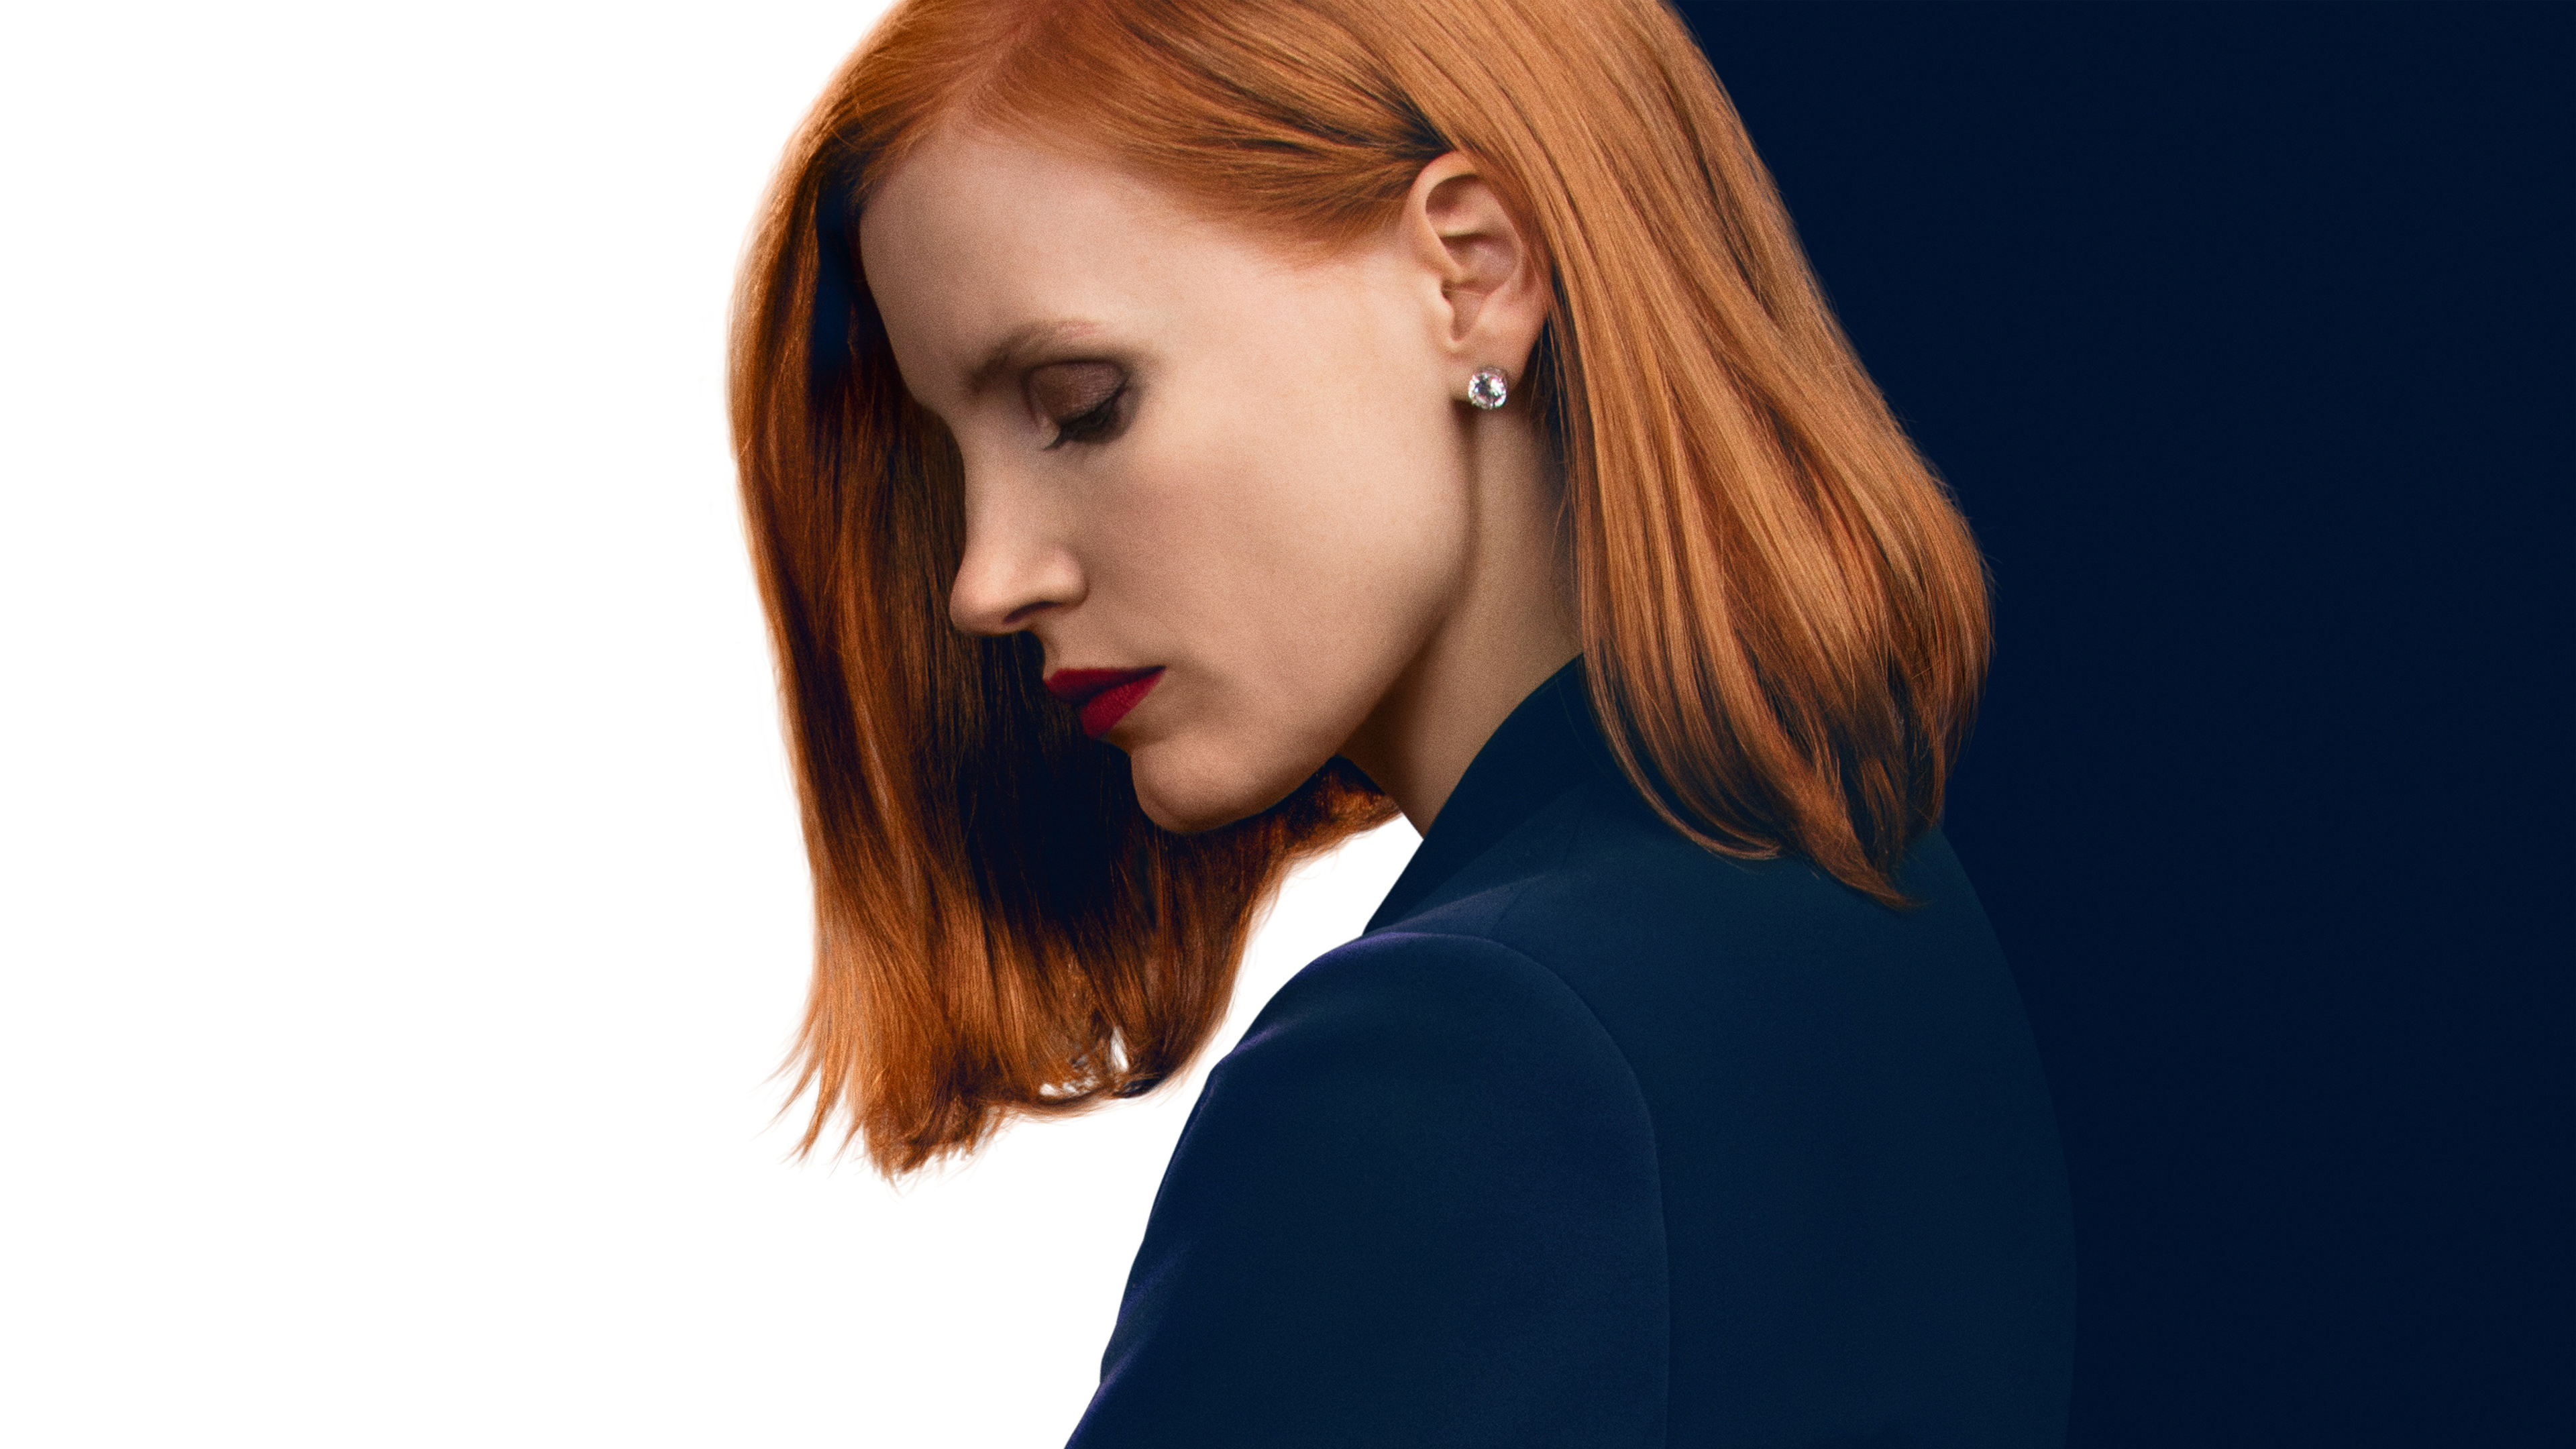 3840x2160 - Jessica Chastain Wallpapers 8